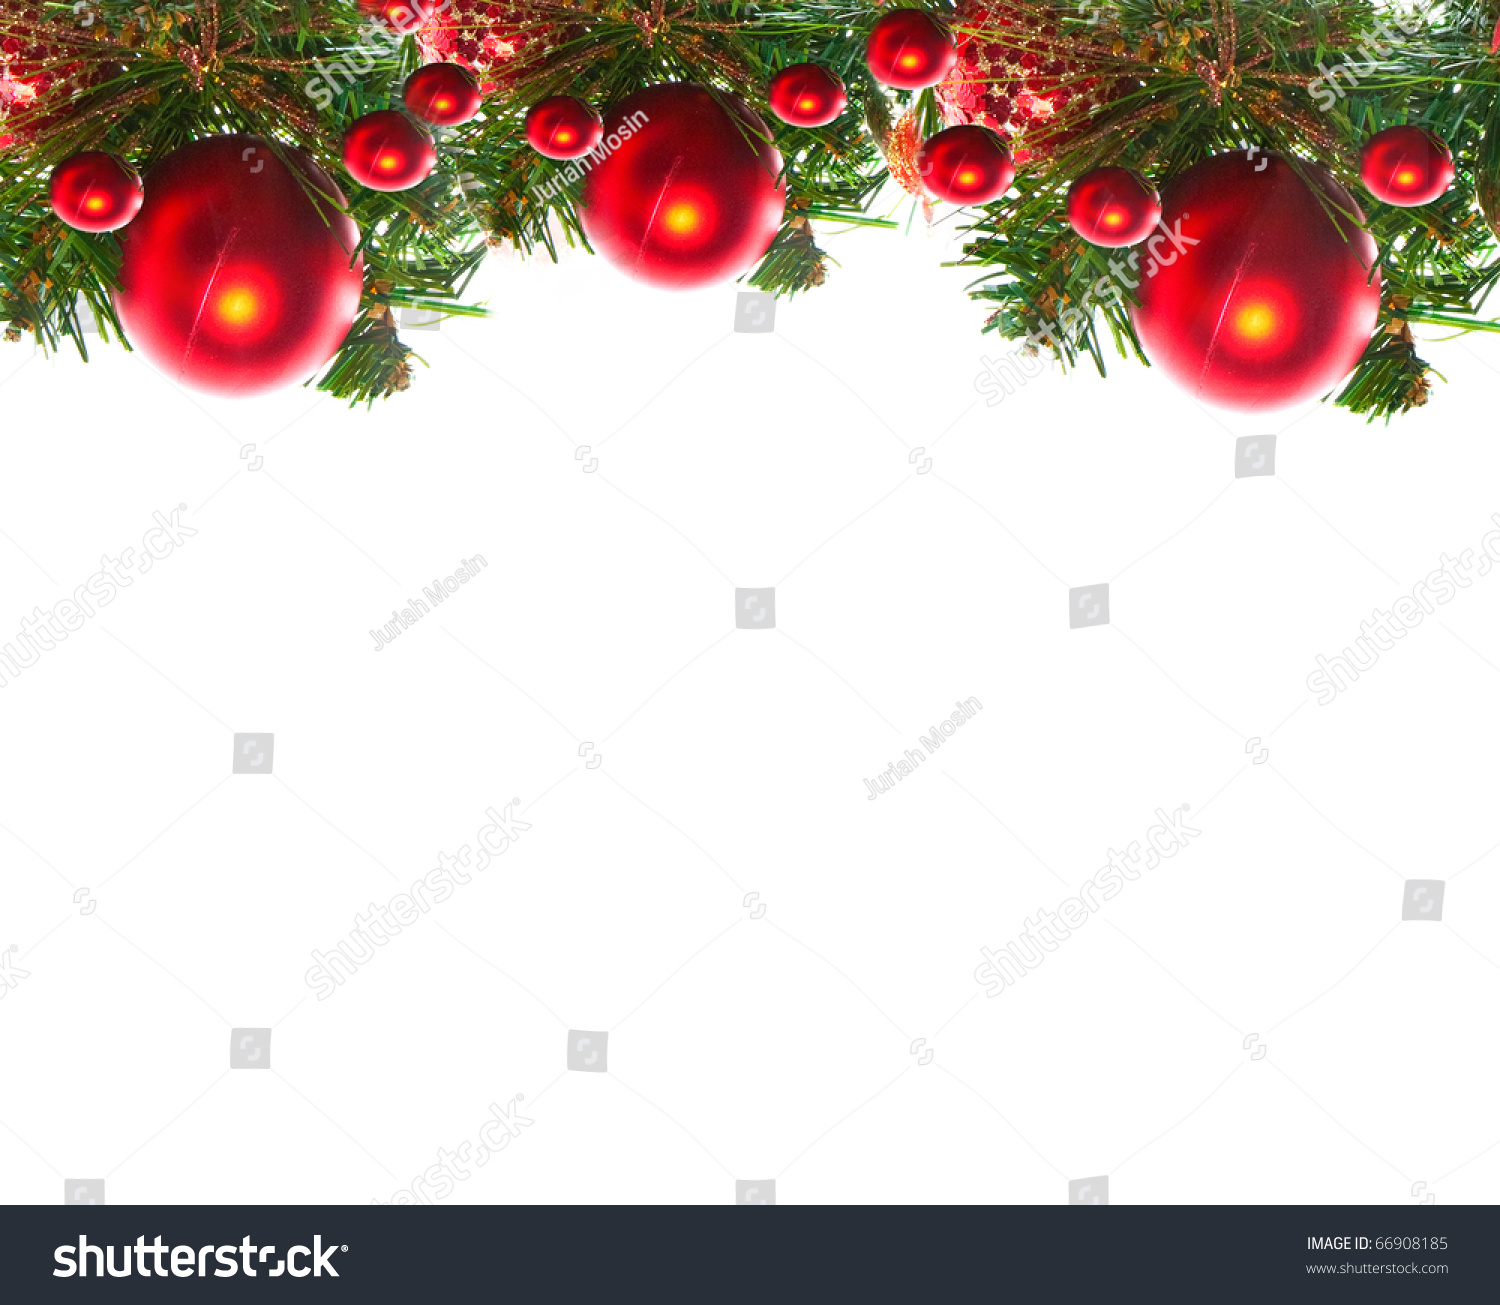 Border Of Red Christmas Garland With Baubles And Ribbons On White ...